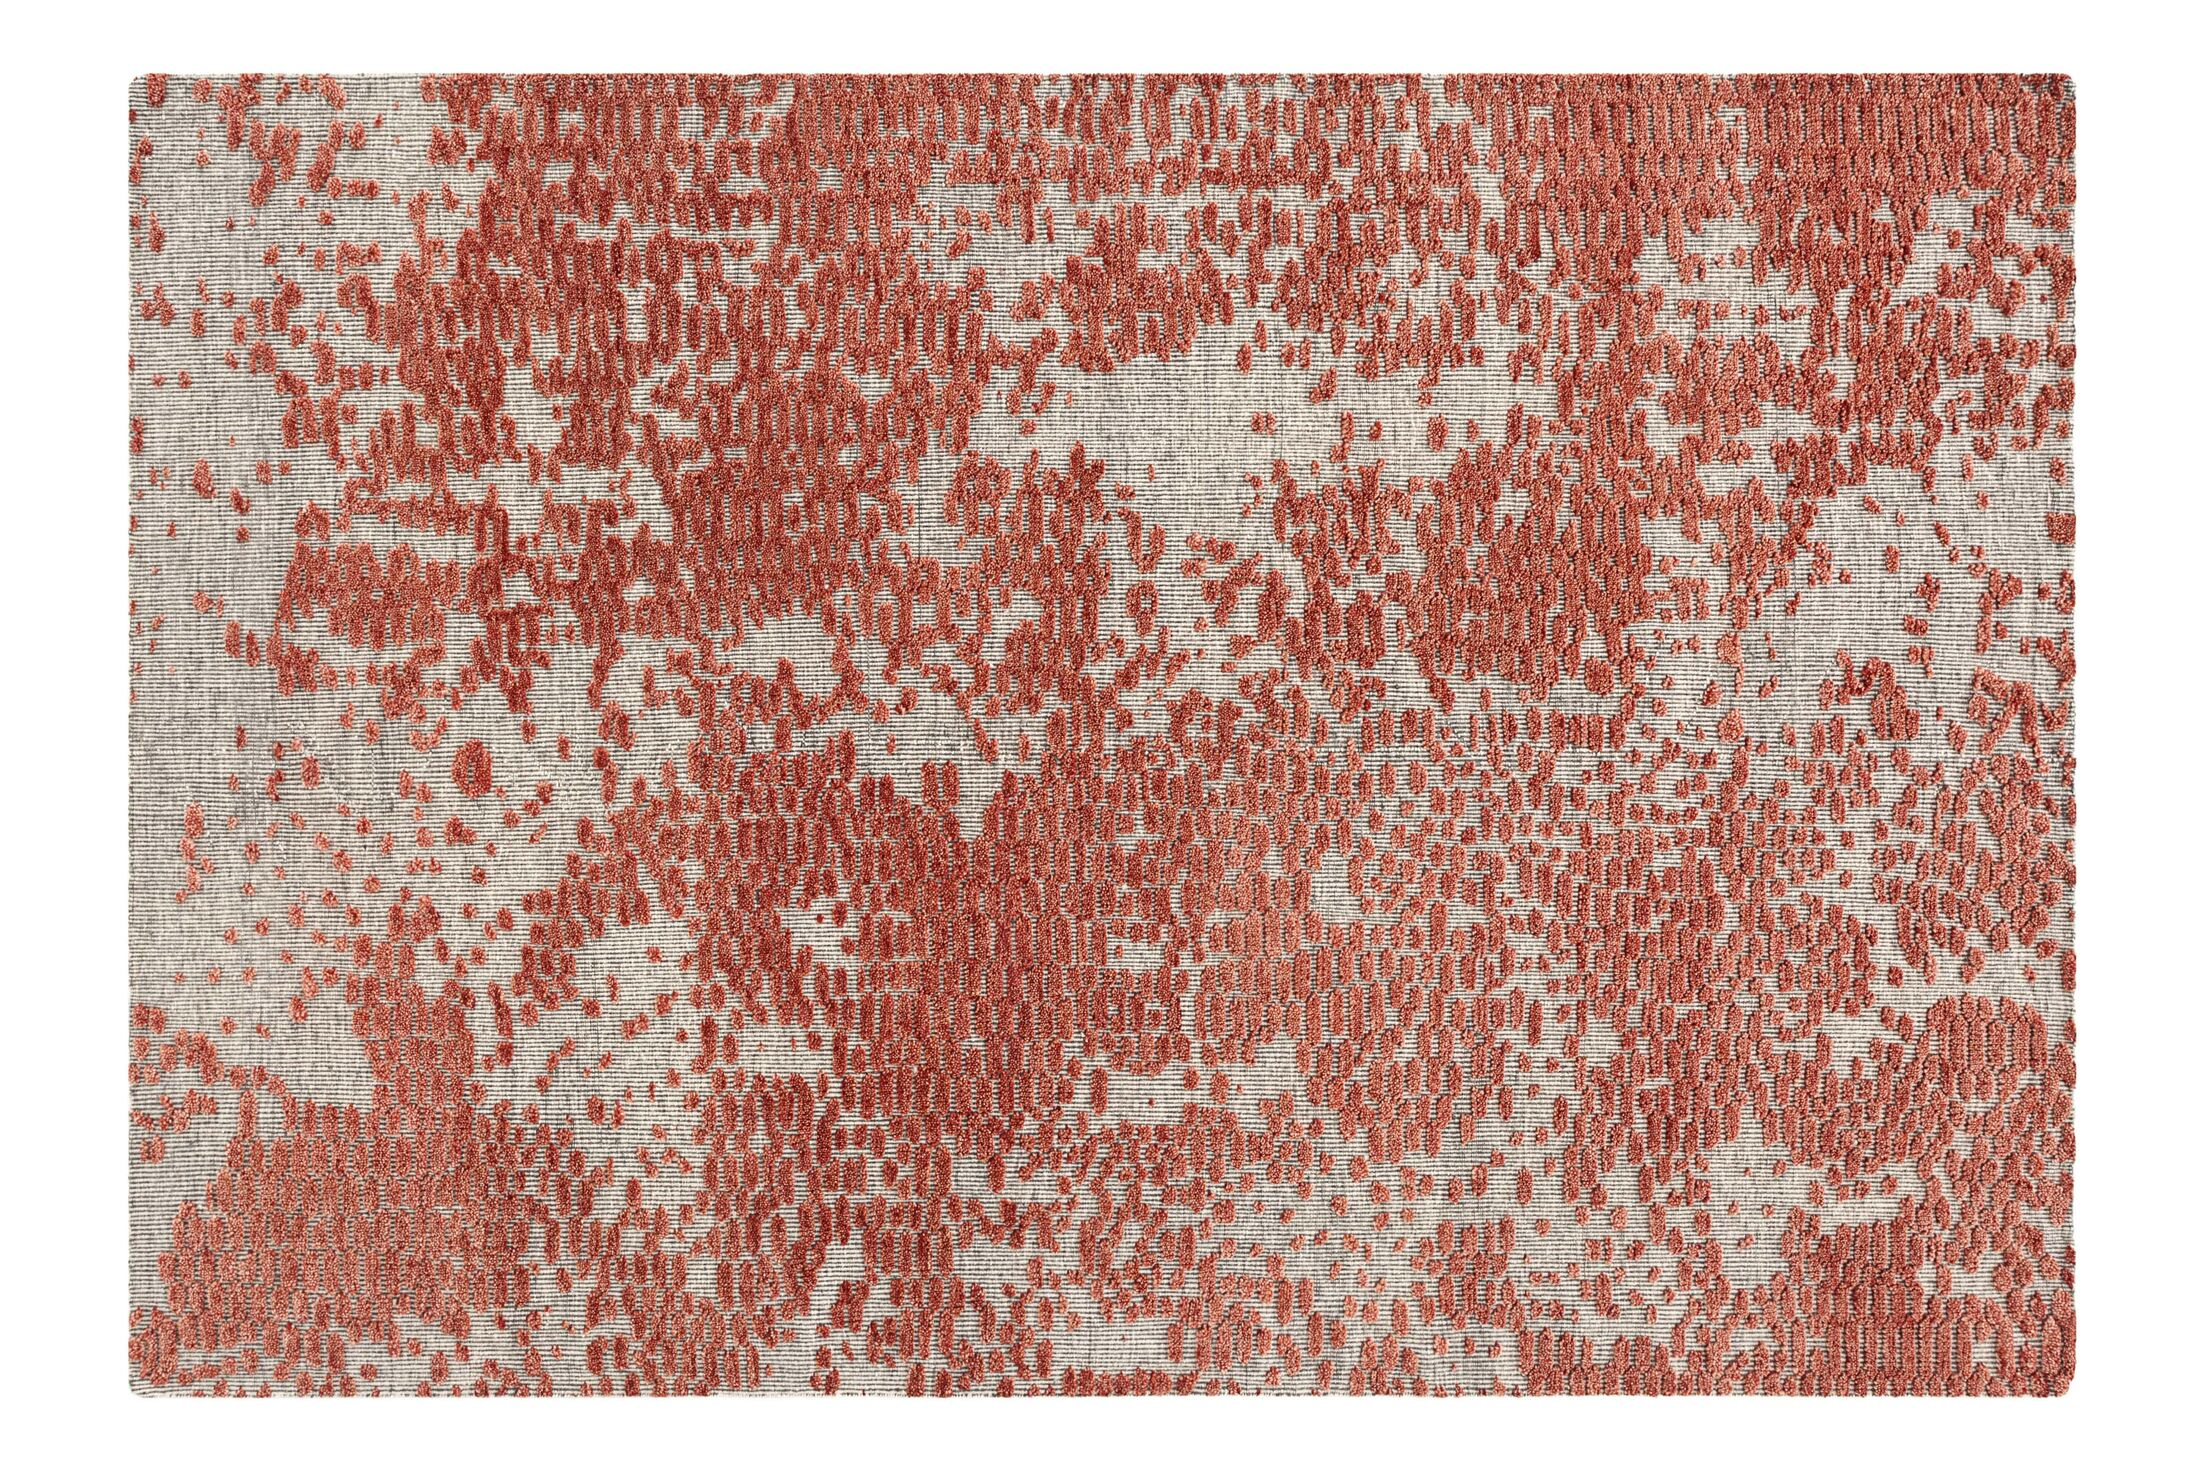 Japan Hand Knotted Wool Coral Area Rug Rug Size: Rectangle 6'8